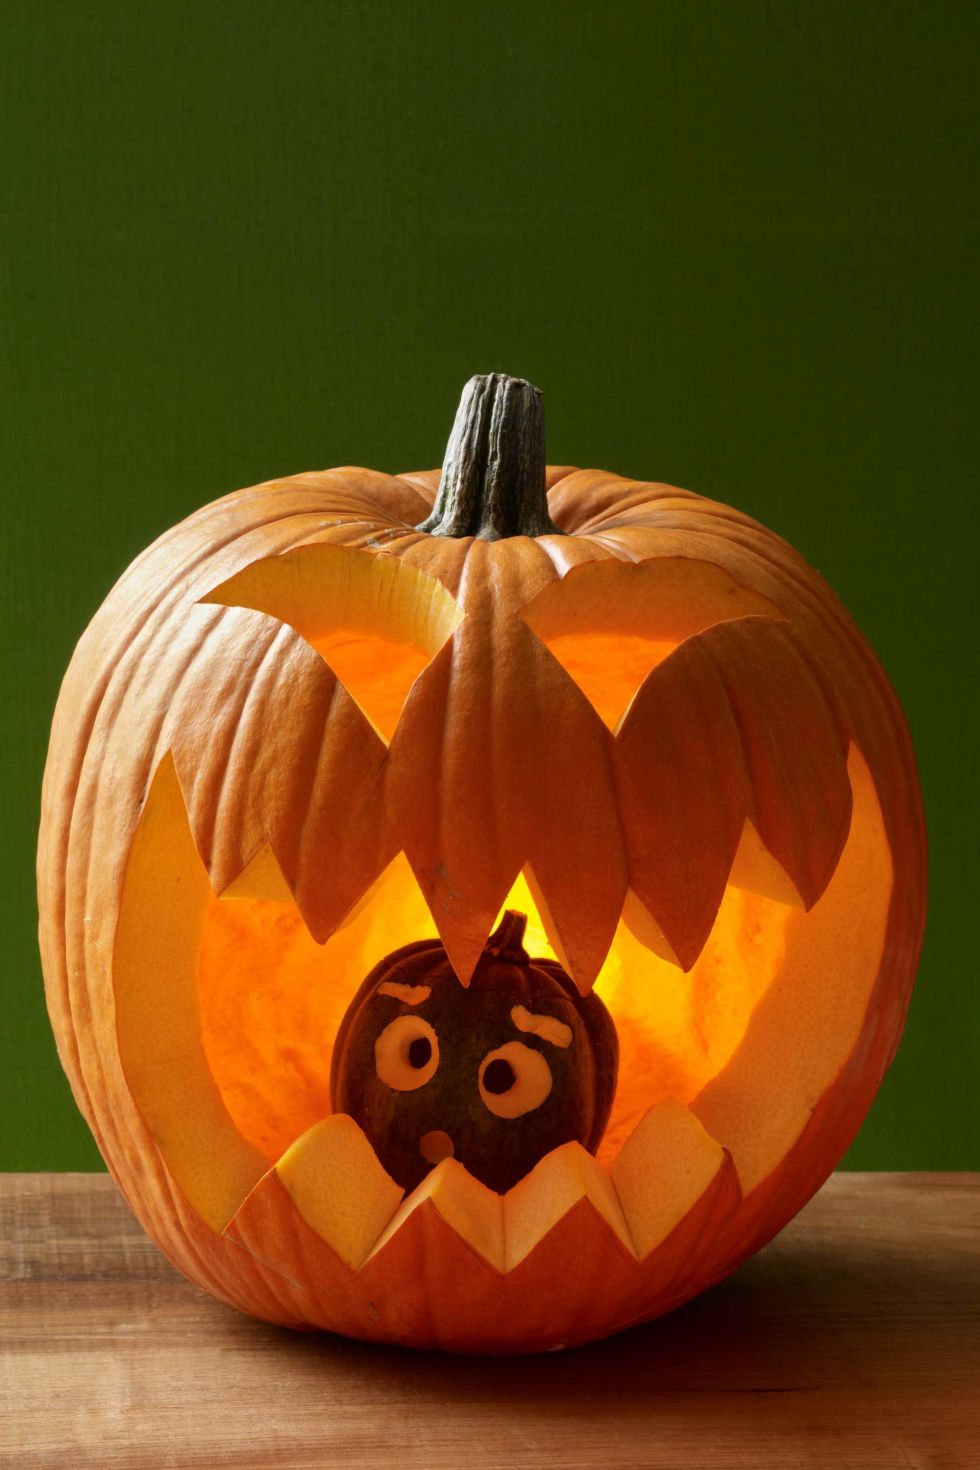 65 best pumpkin carving ideas halloween 2017 creative jack o lantern designs - Cool Halloween Pumpkin Designs